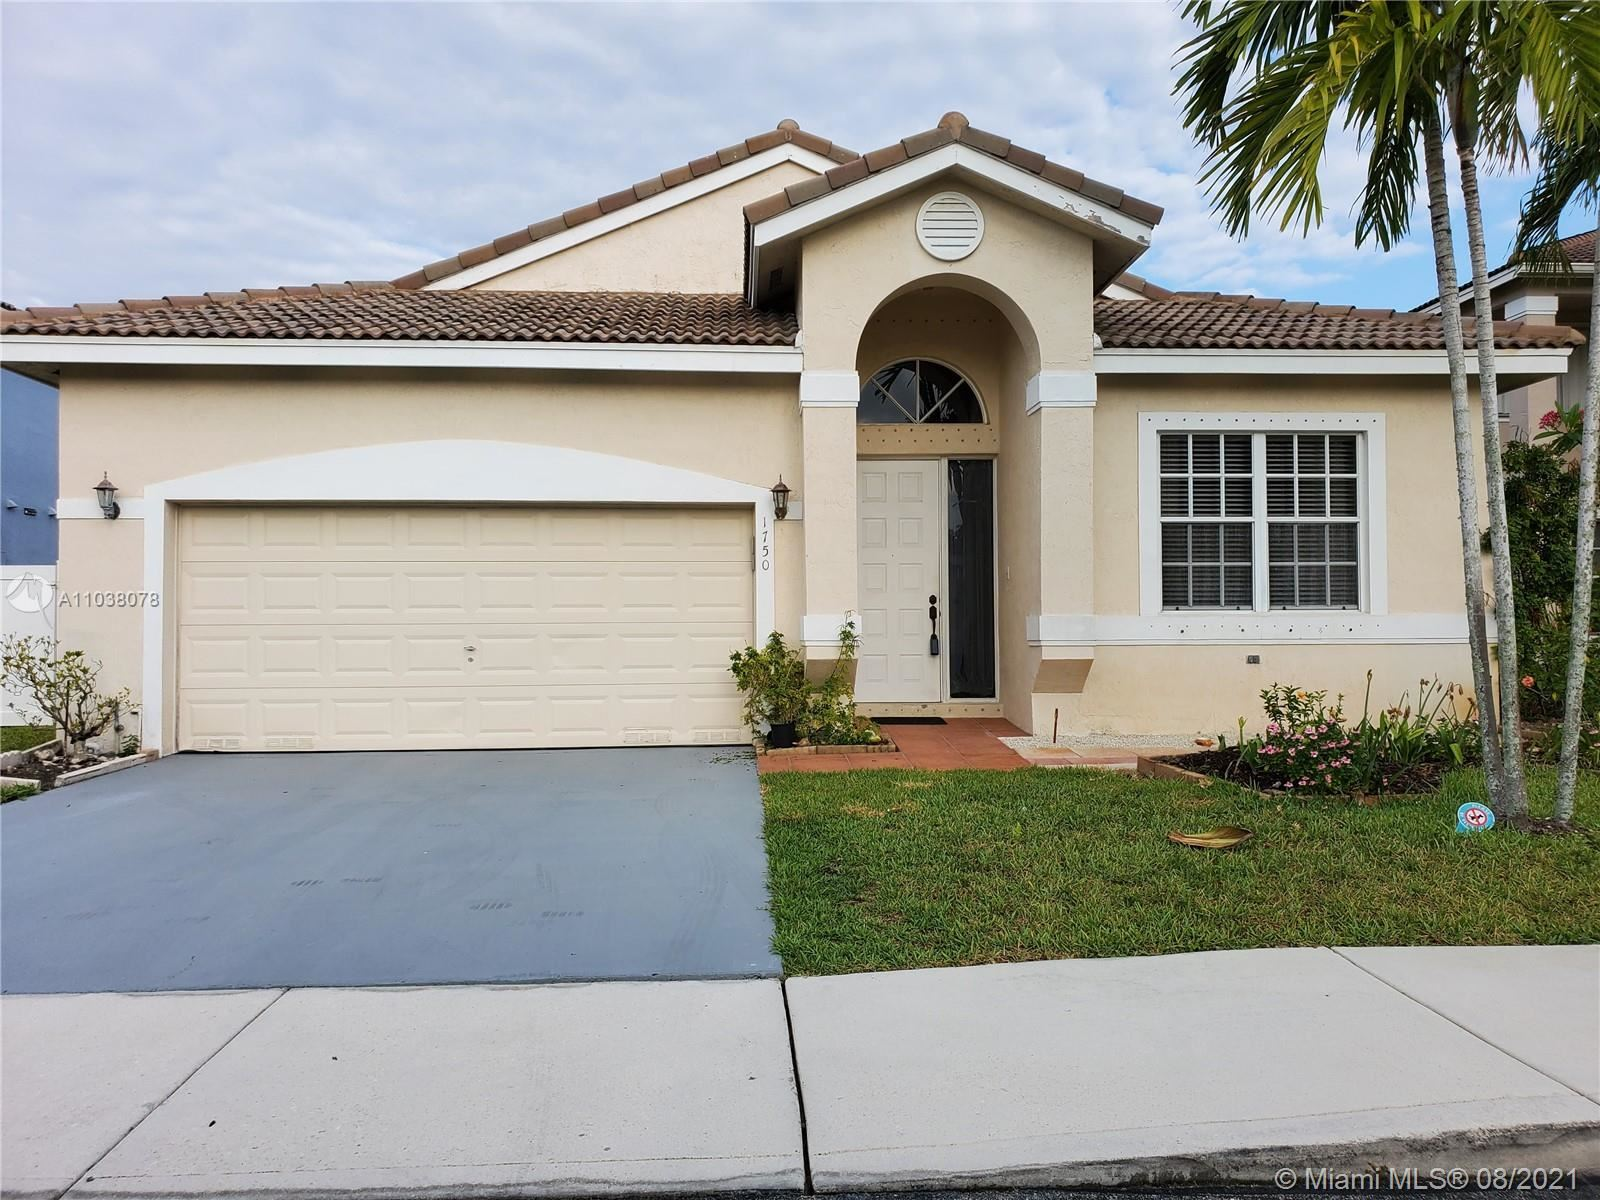 Photo of 1750 NW 165th Ave, Pembroke Pines, FL 33028 (MLS # A11038078)